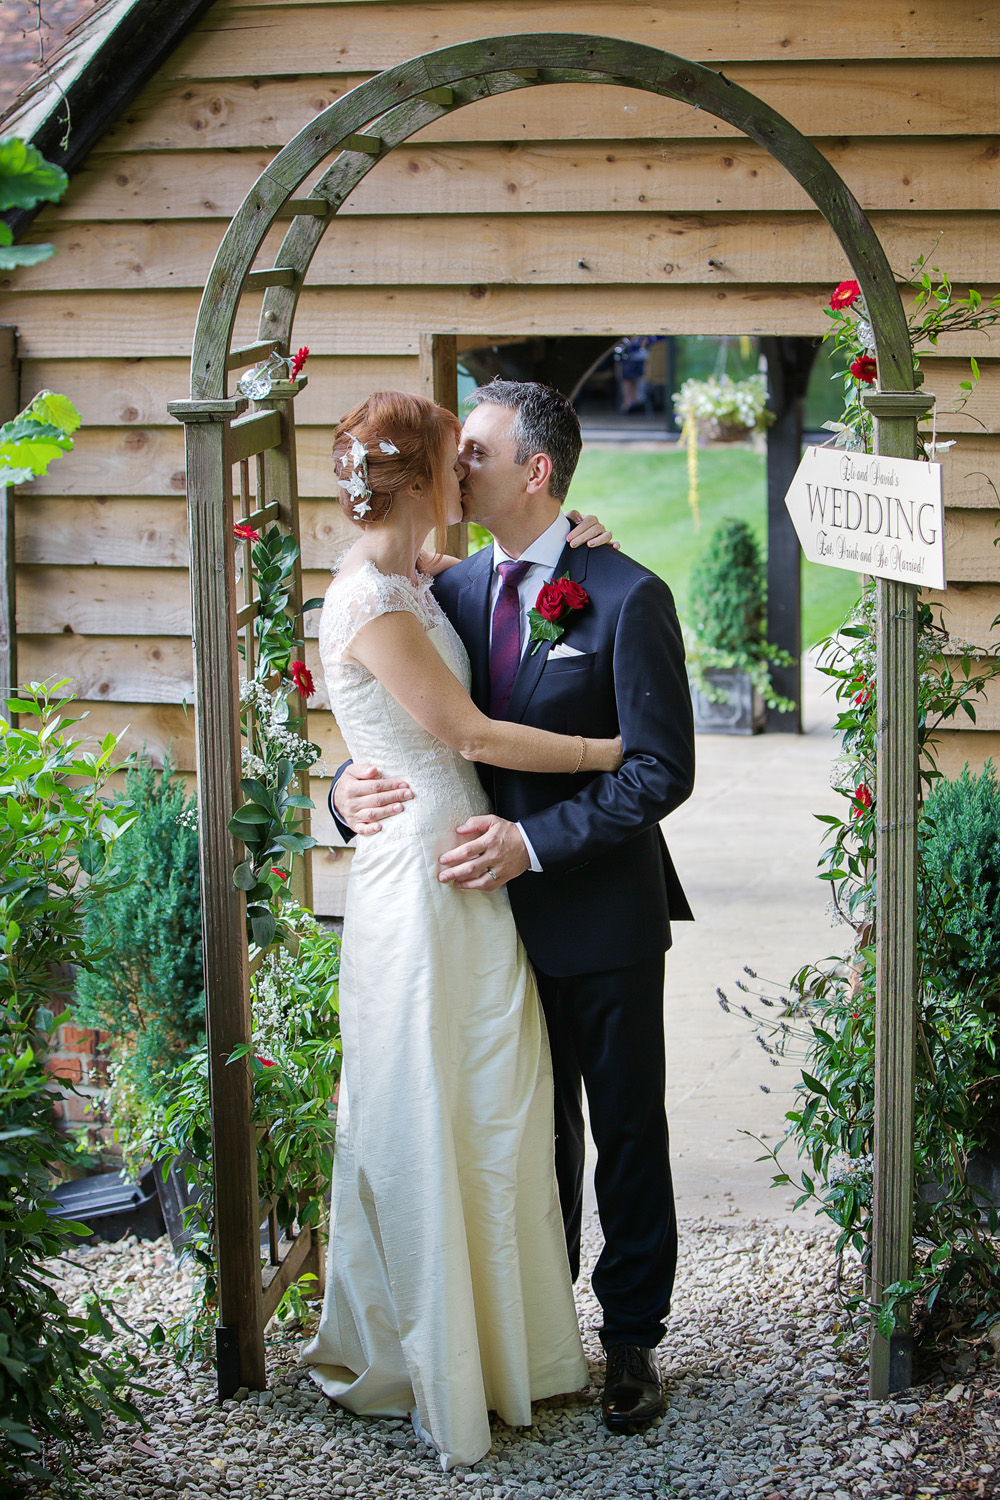 Lains_Barn_Wedding_Photographer_Wantage_033.jpg